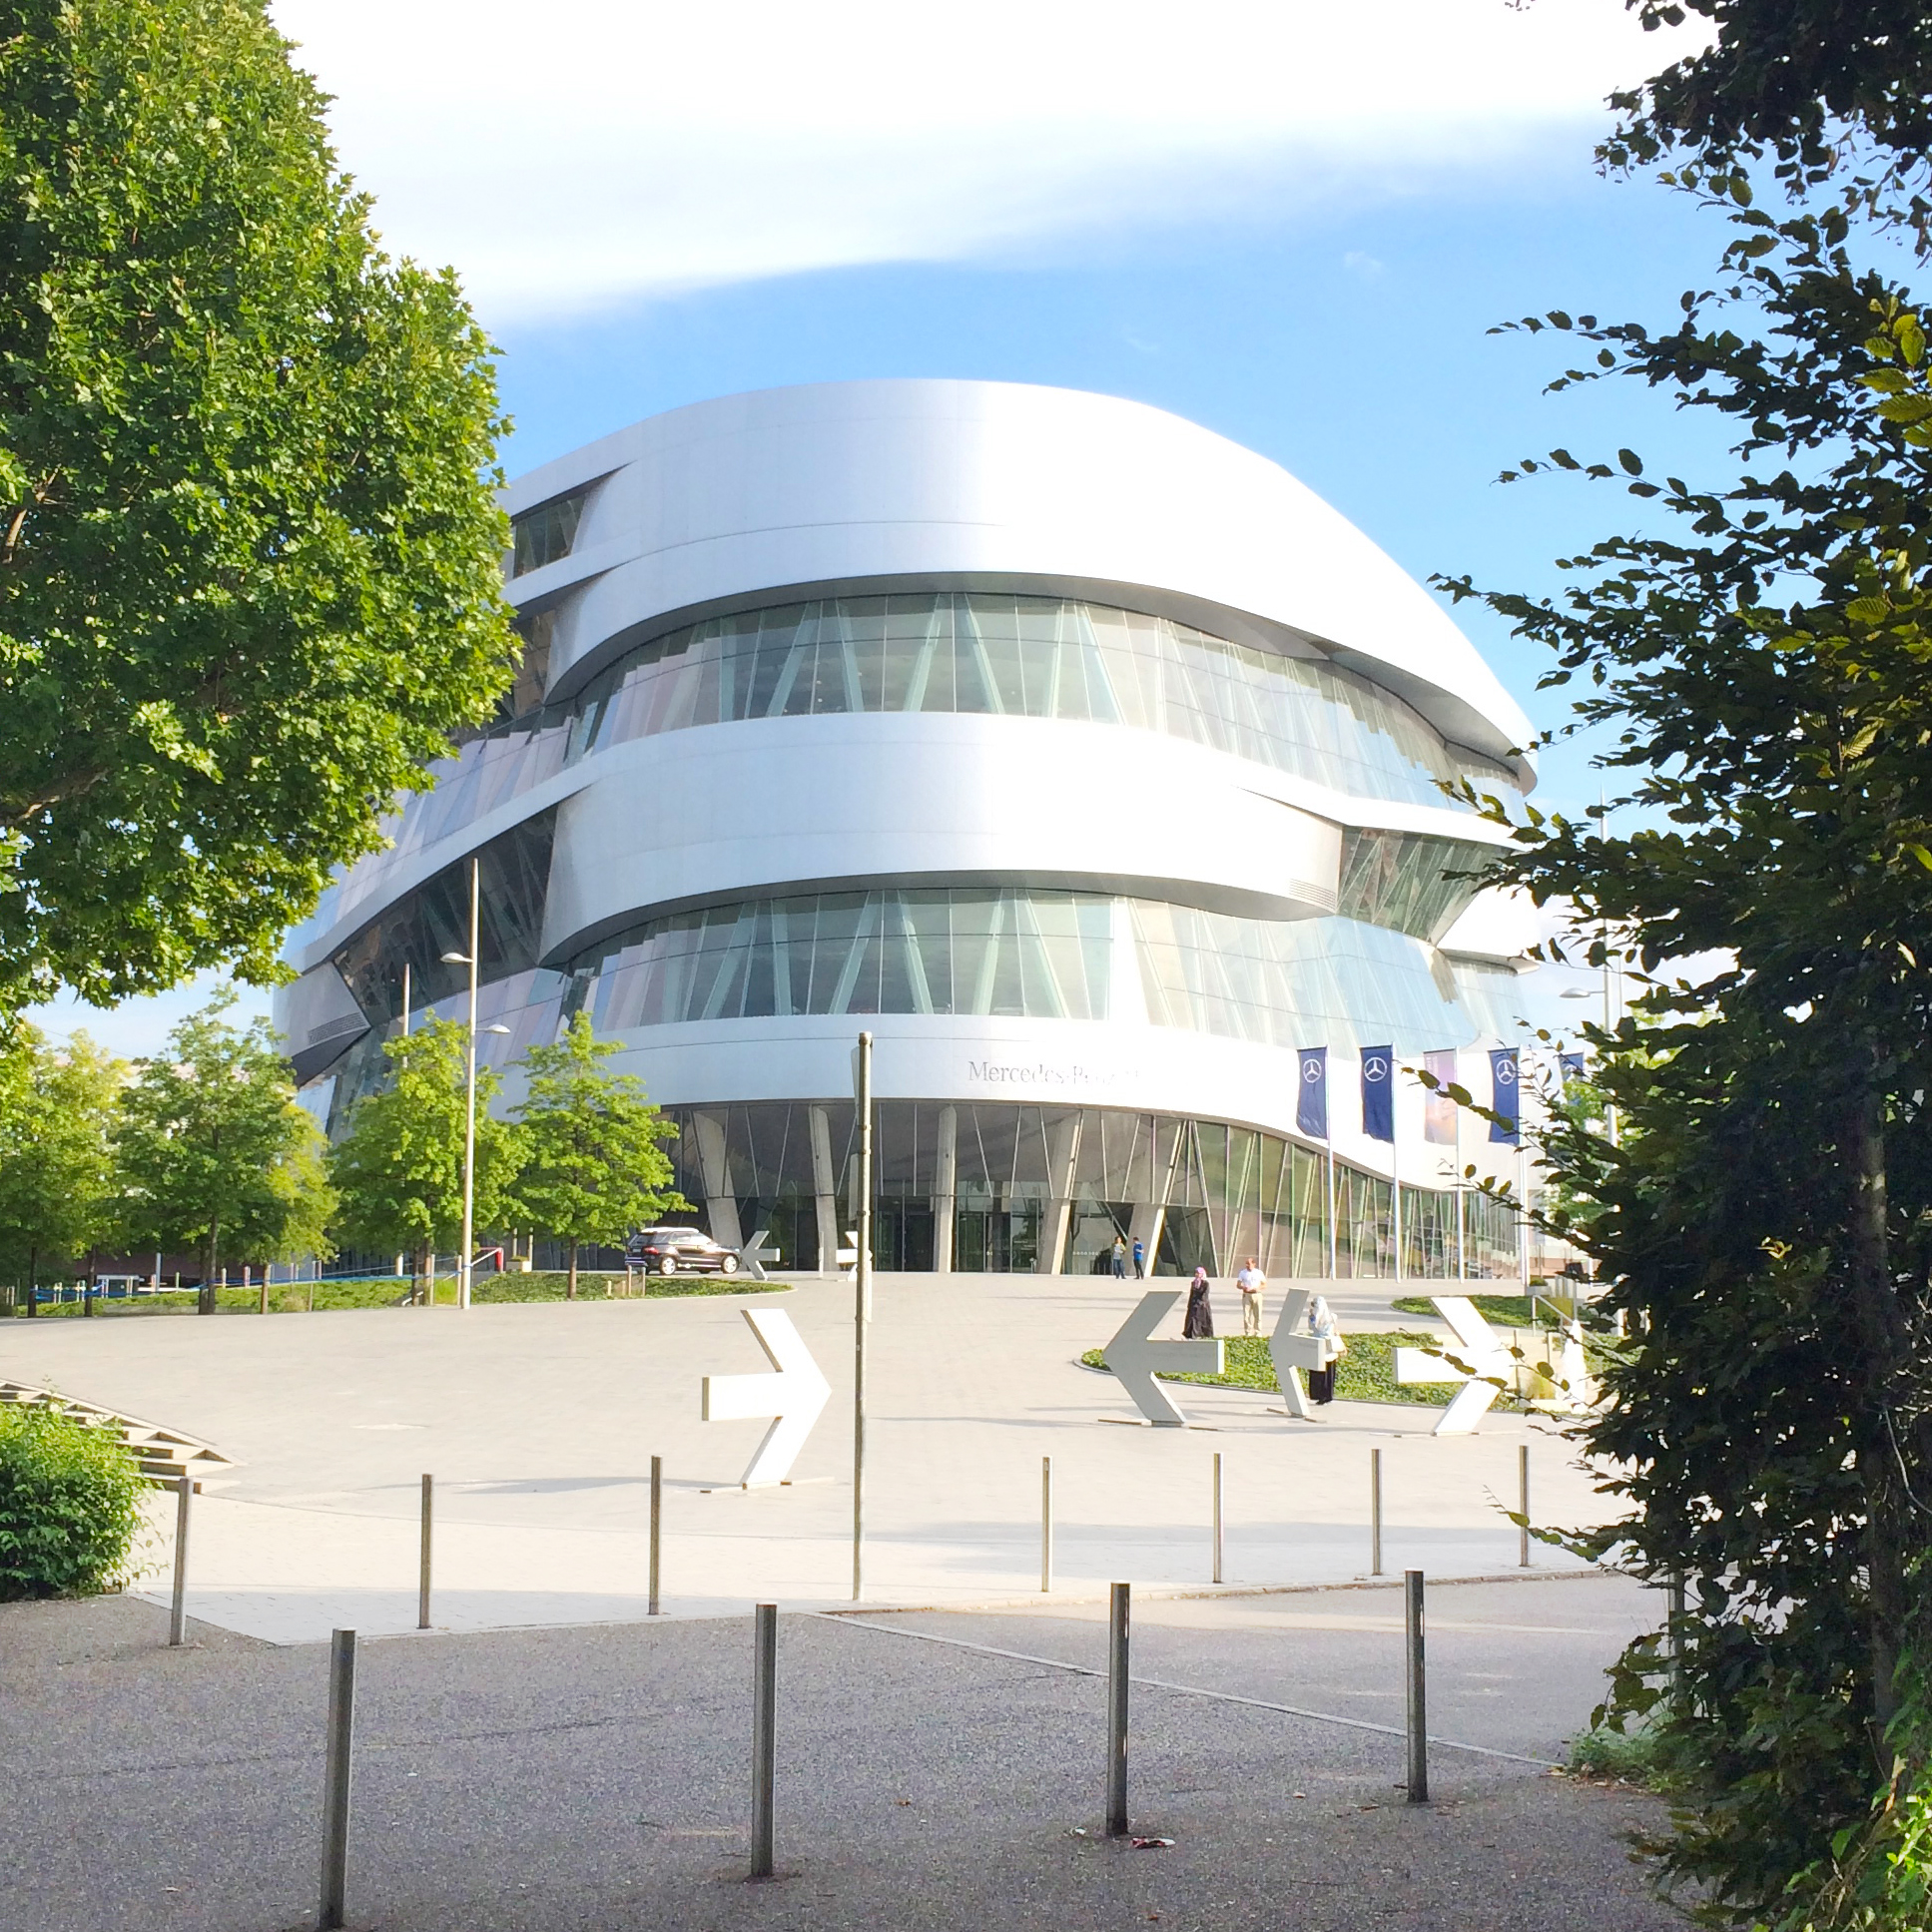 The Mercedes-Benz Museum is in  such an awesome building! You take an elevator to the top, then walk down a winding ramp through the decades.